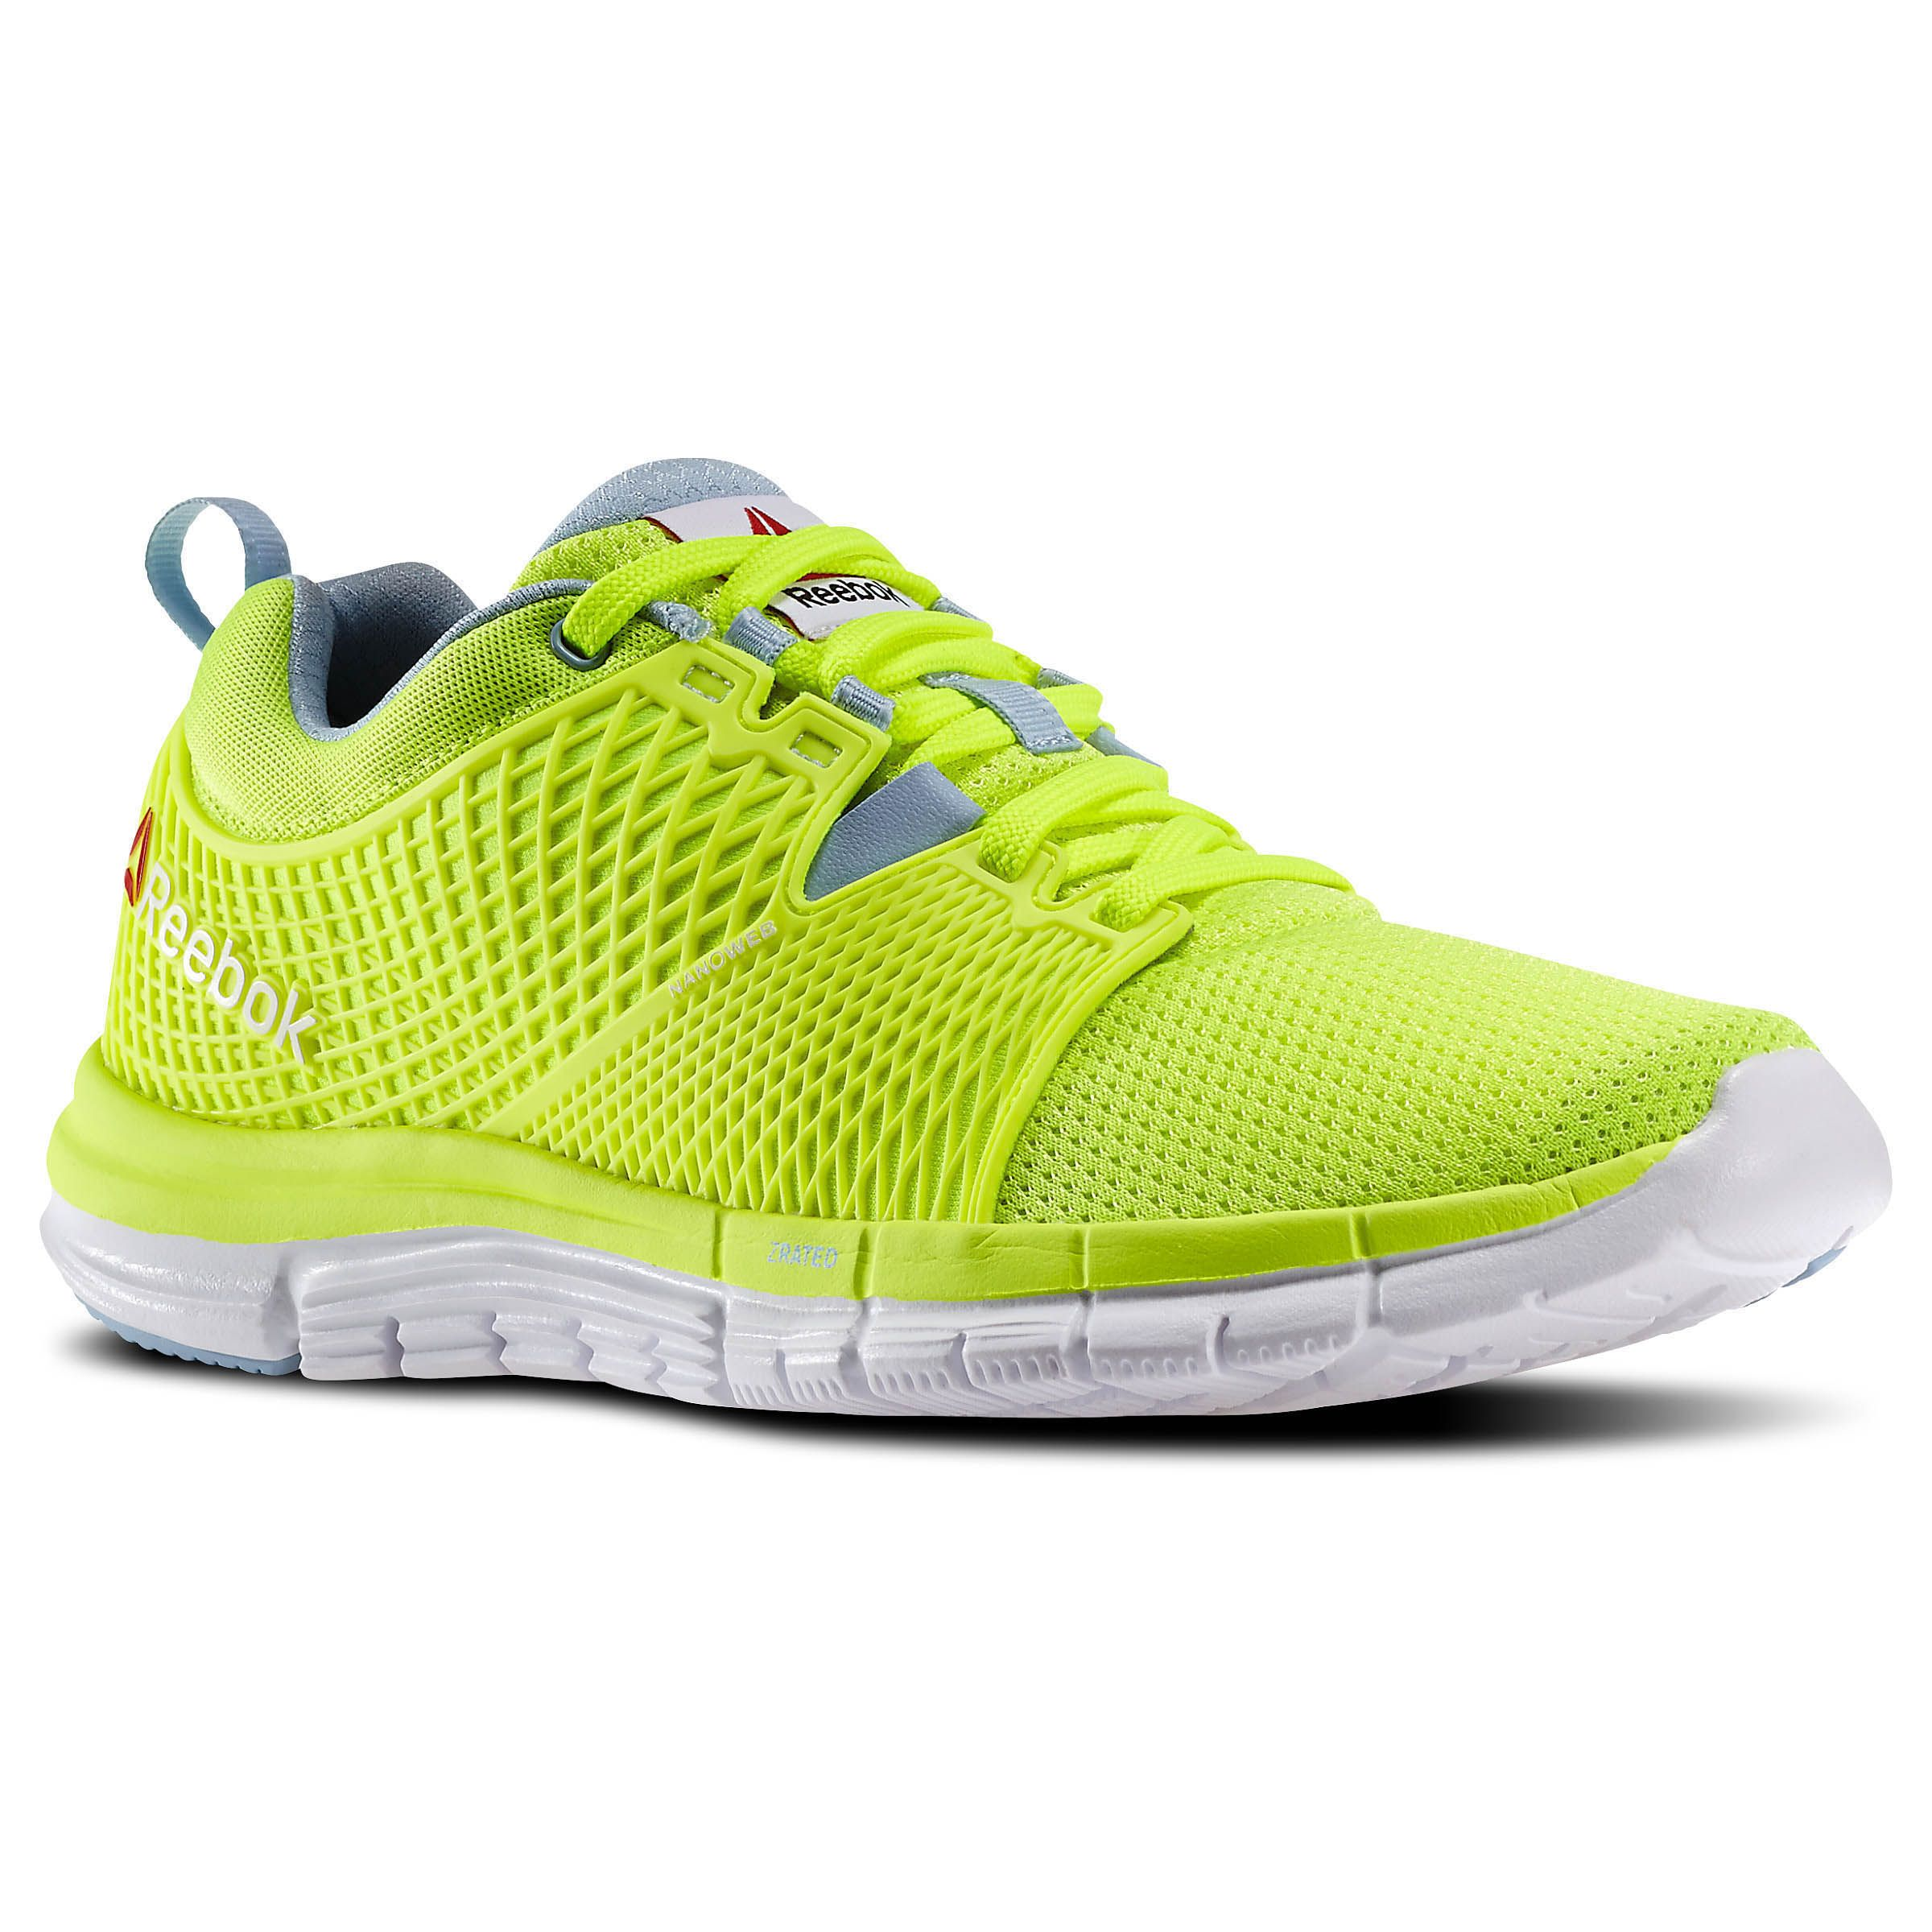 Reebok - Reebok ZQuick Dash been dreaming of this baby. Soon my love soon